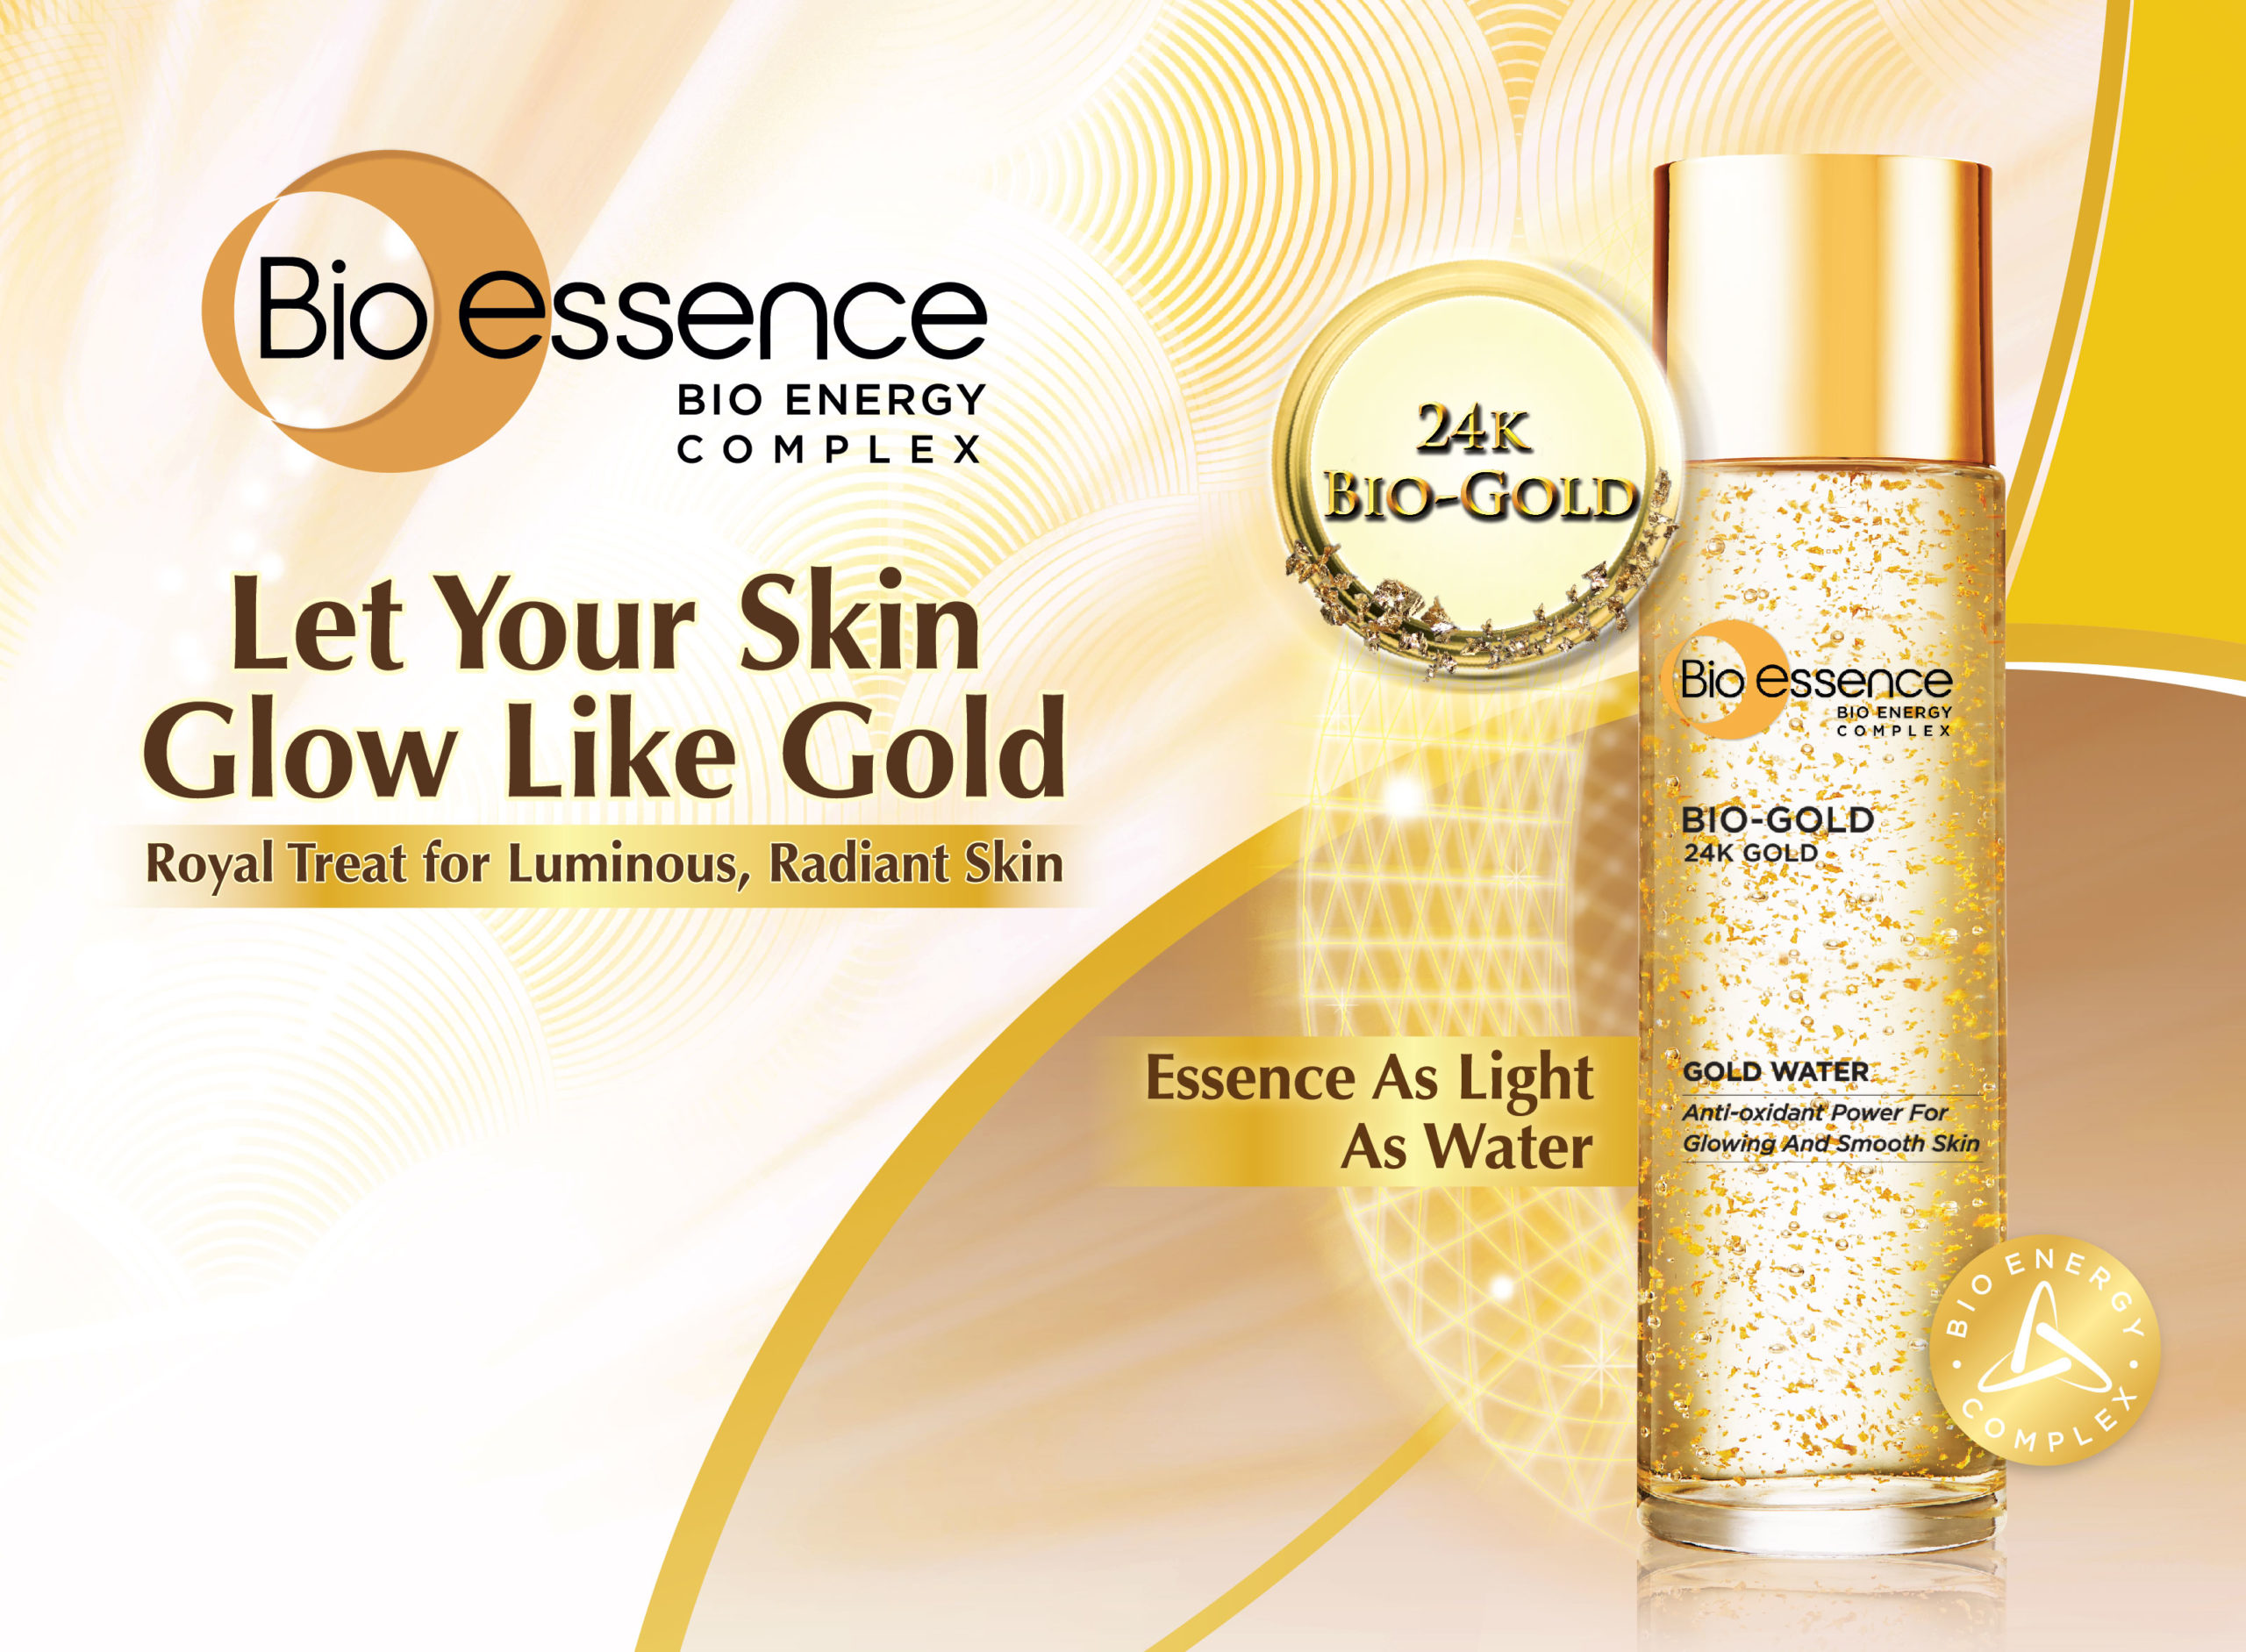 https://www.alpropharmacy.com/oneclick/product/bio-essence-bio-gold-gold-water-150ml/